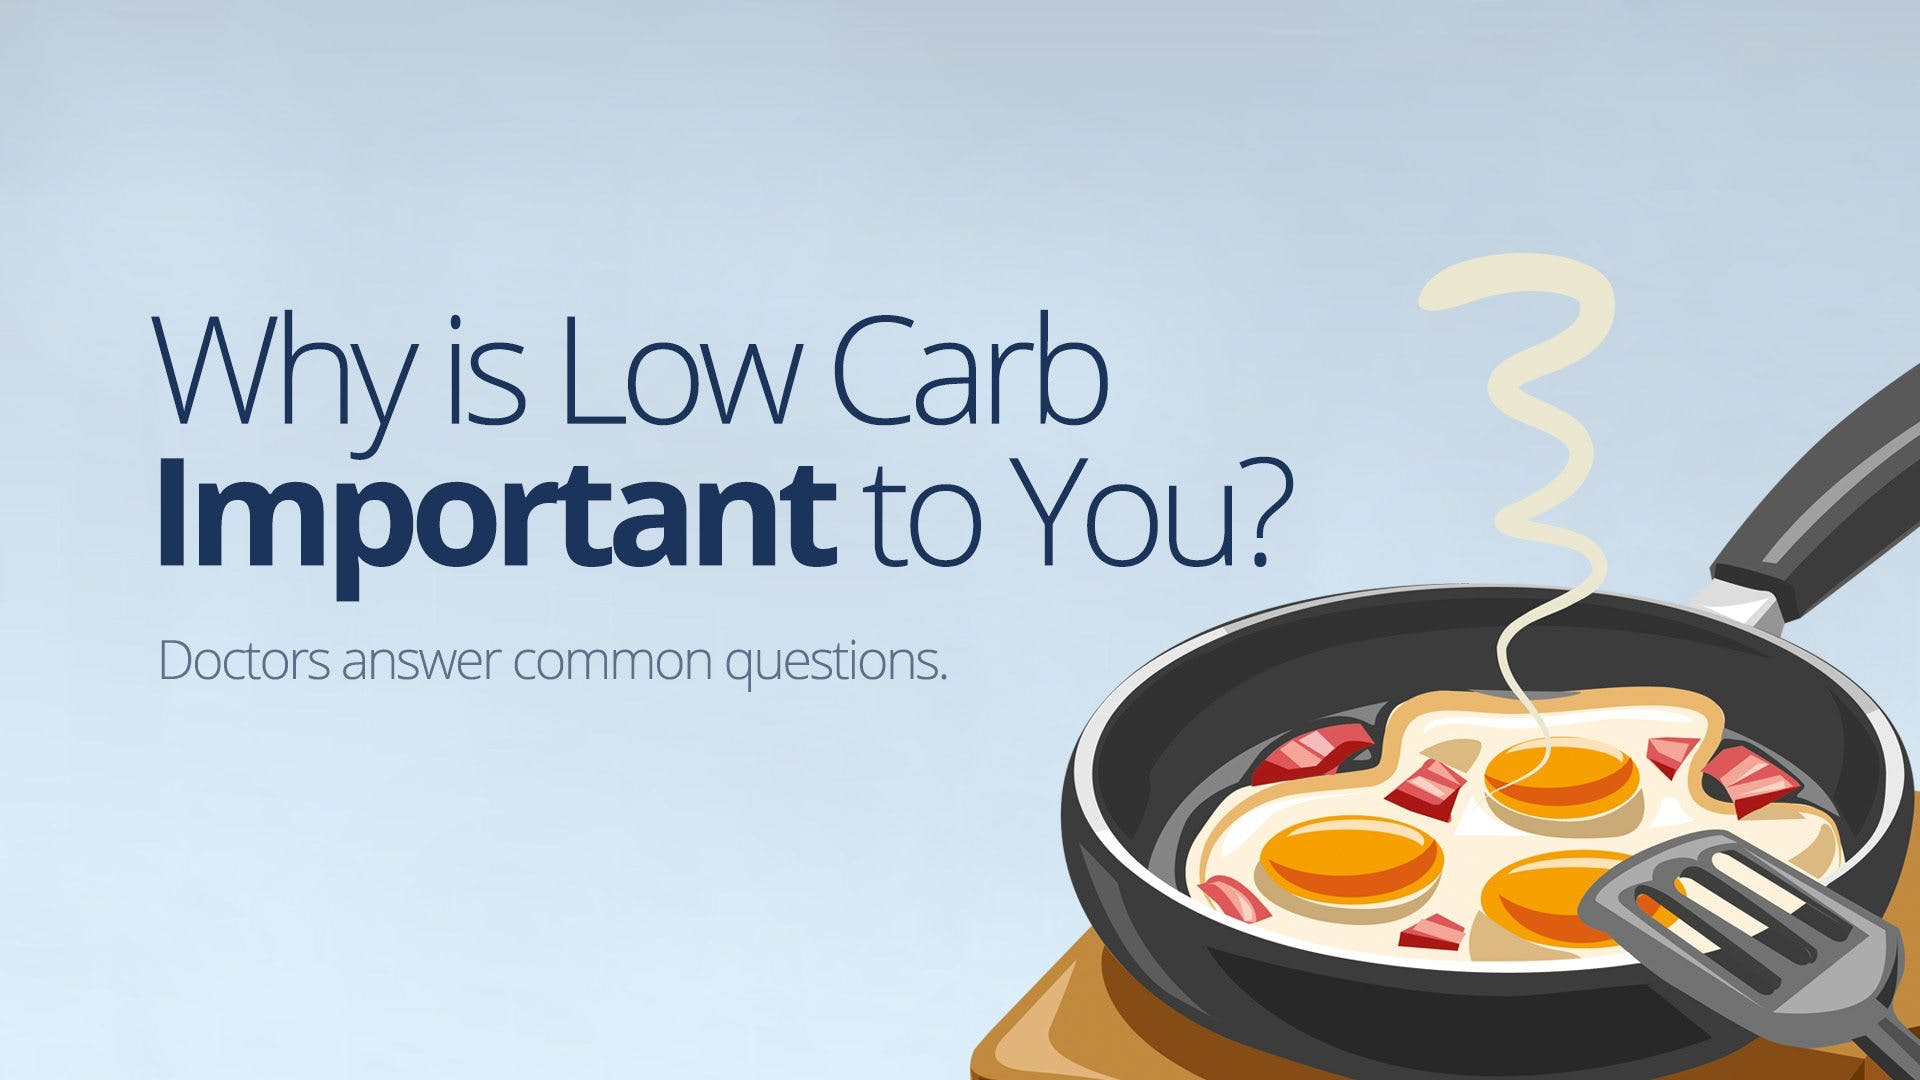 Why is low carb important to you?